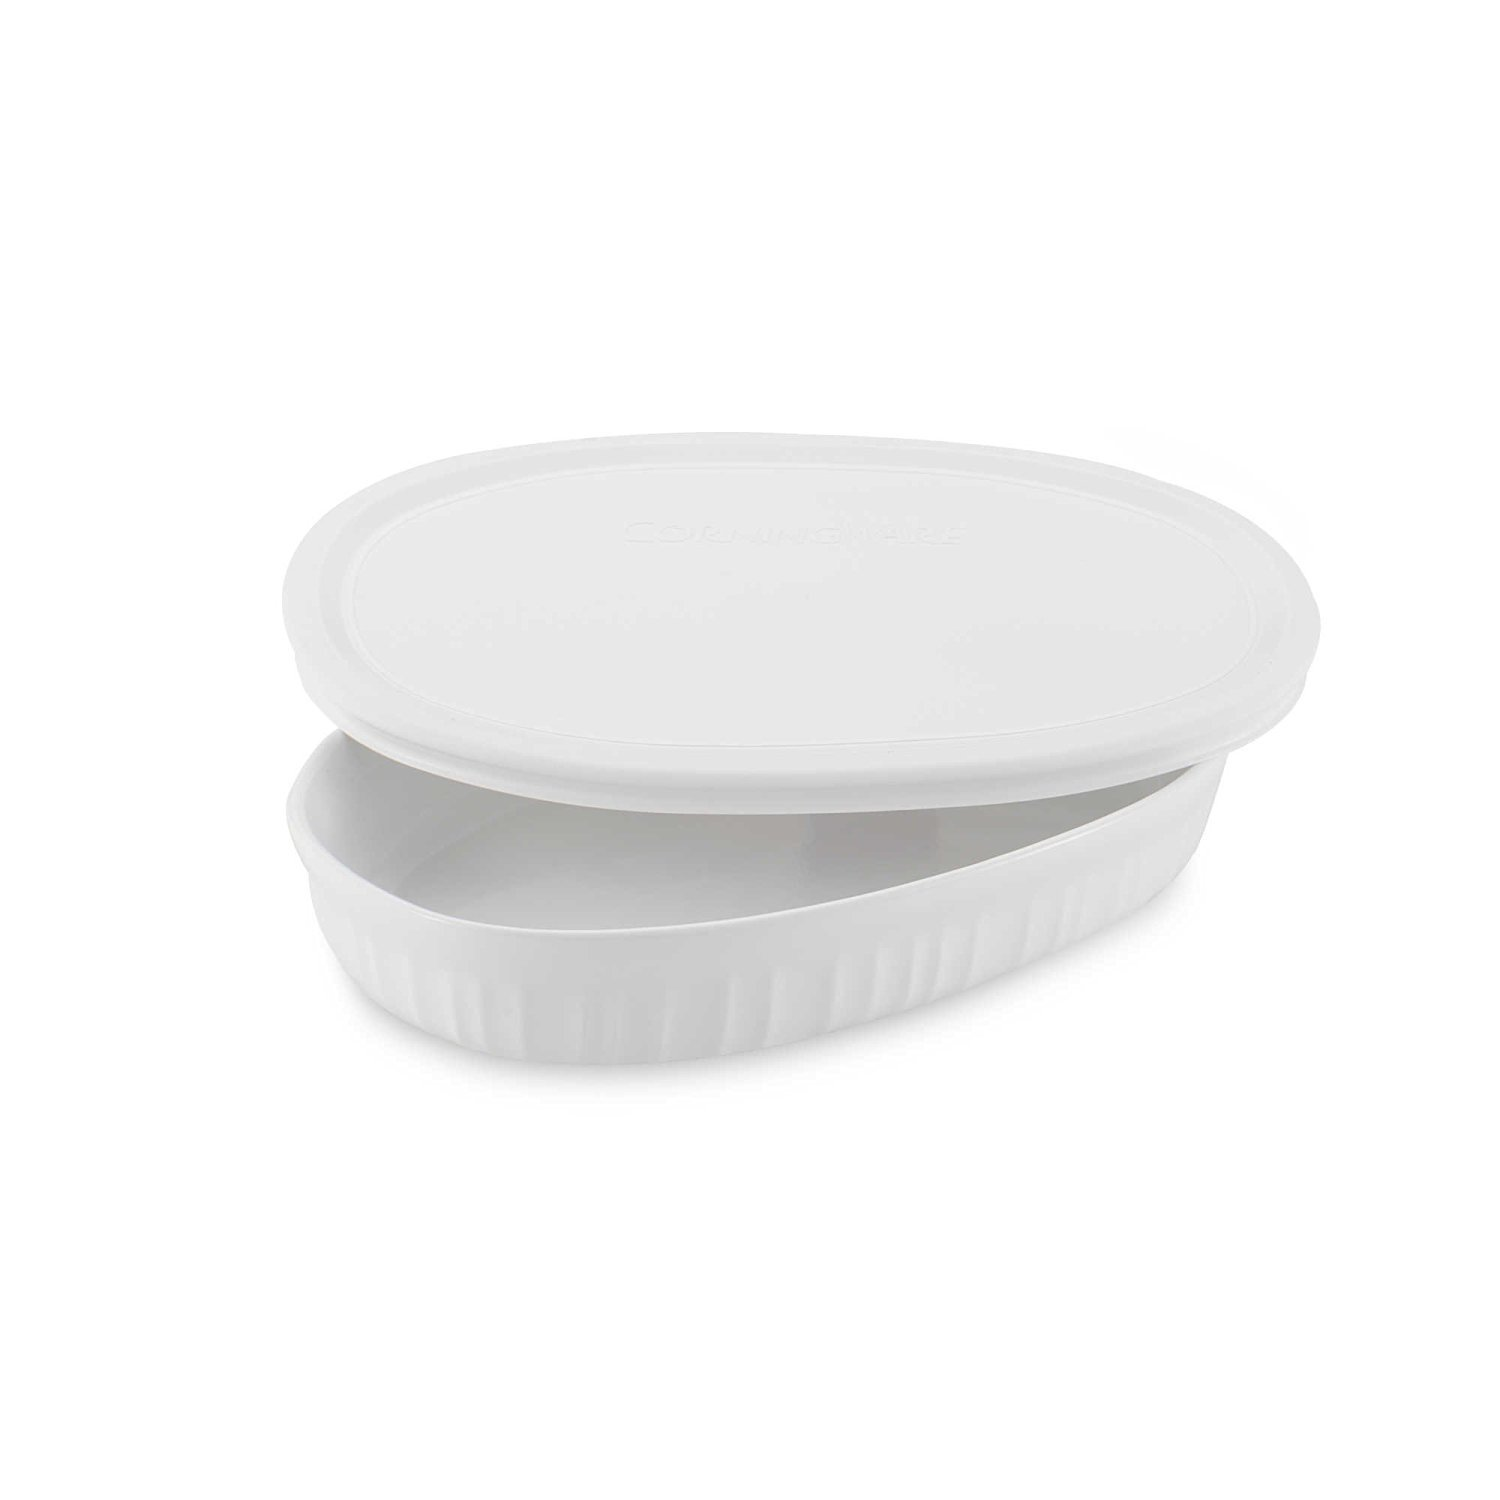 CorningWare French White 15-Ounce Oval Dish